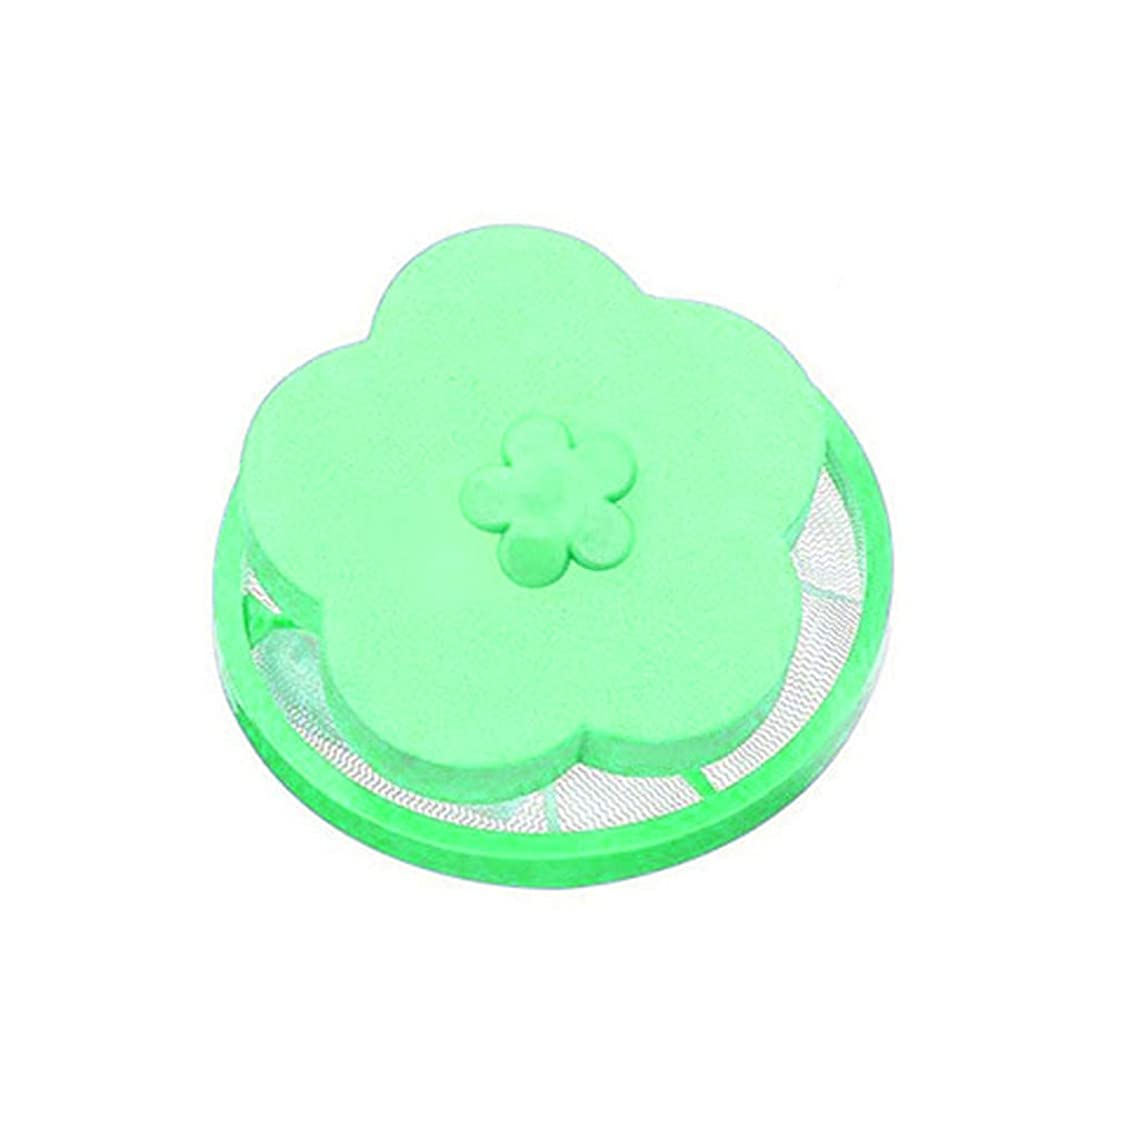 Household Reusable Washing Machine Floating Lint Mesh Bag Hair Pet Fur Filter Net Pouch Laundry Cleaning Supplies Bra Stocking Lingerie Underwear Green Orange (Green)